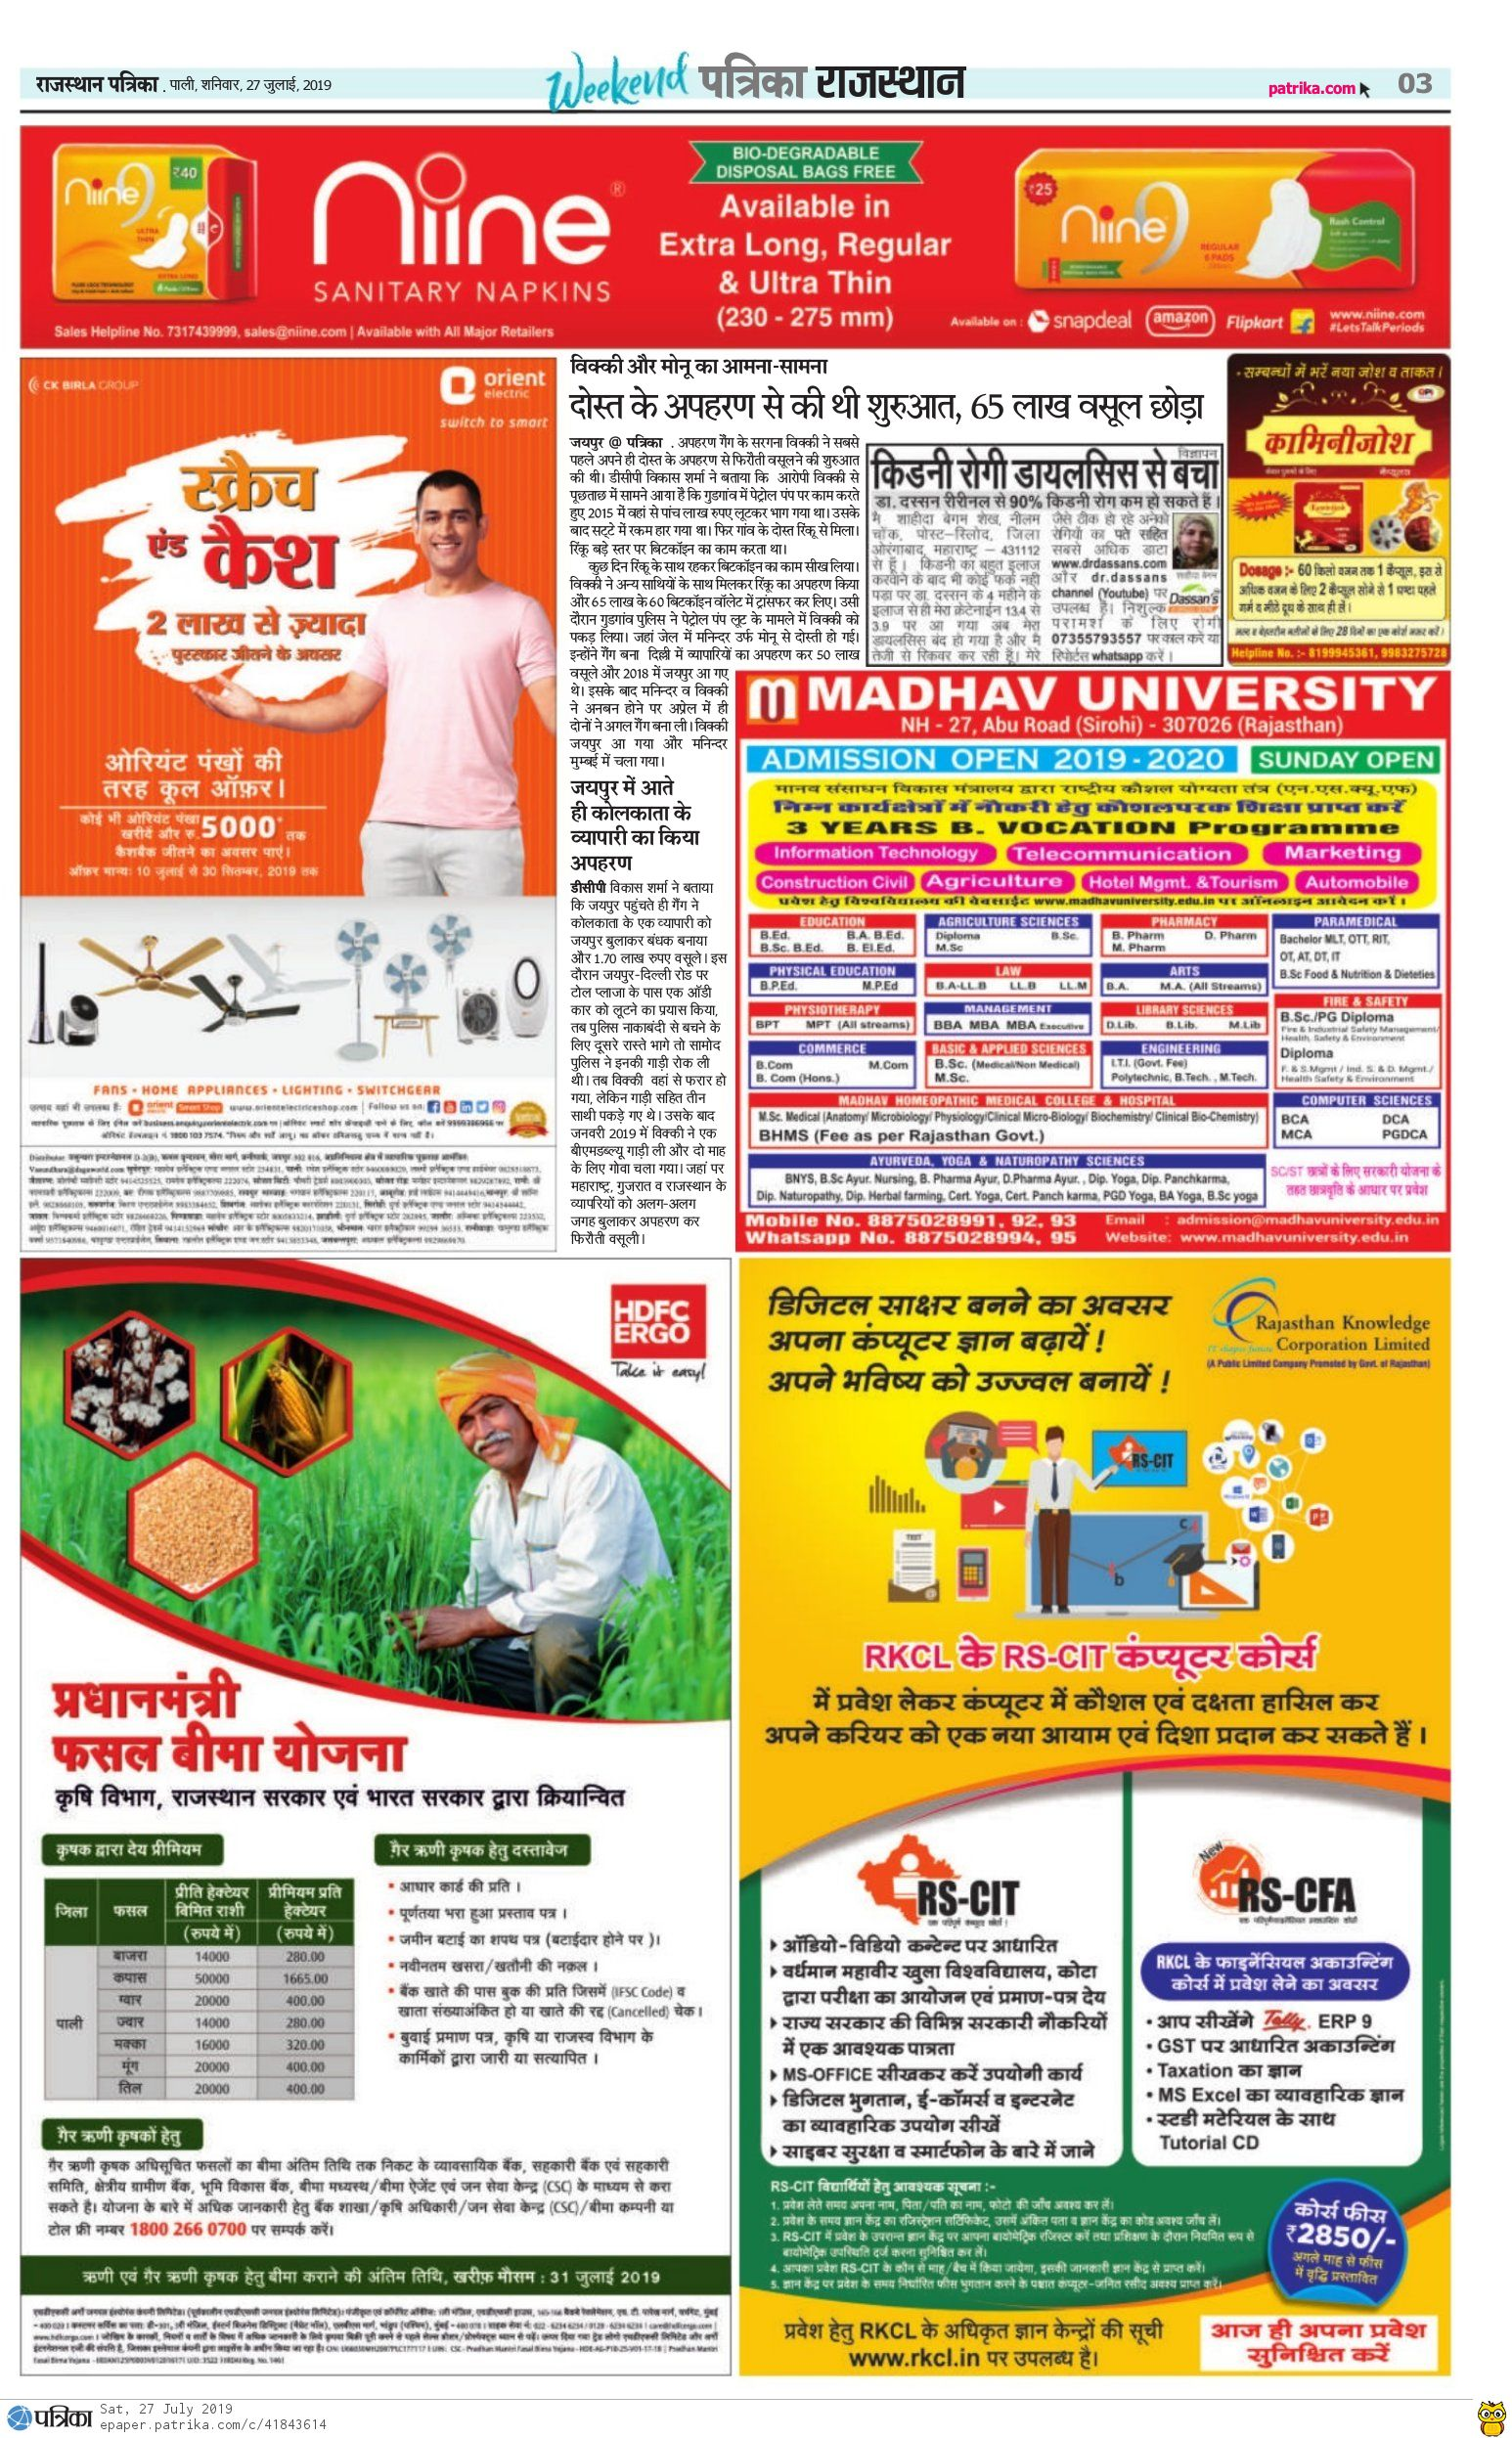 press ad in rajasthan patrika pali